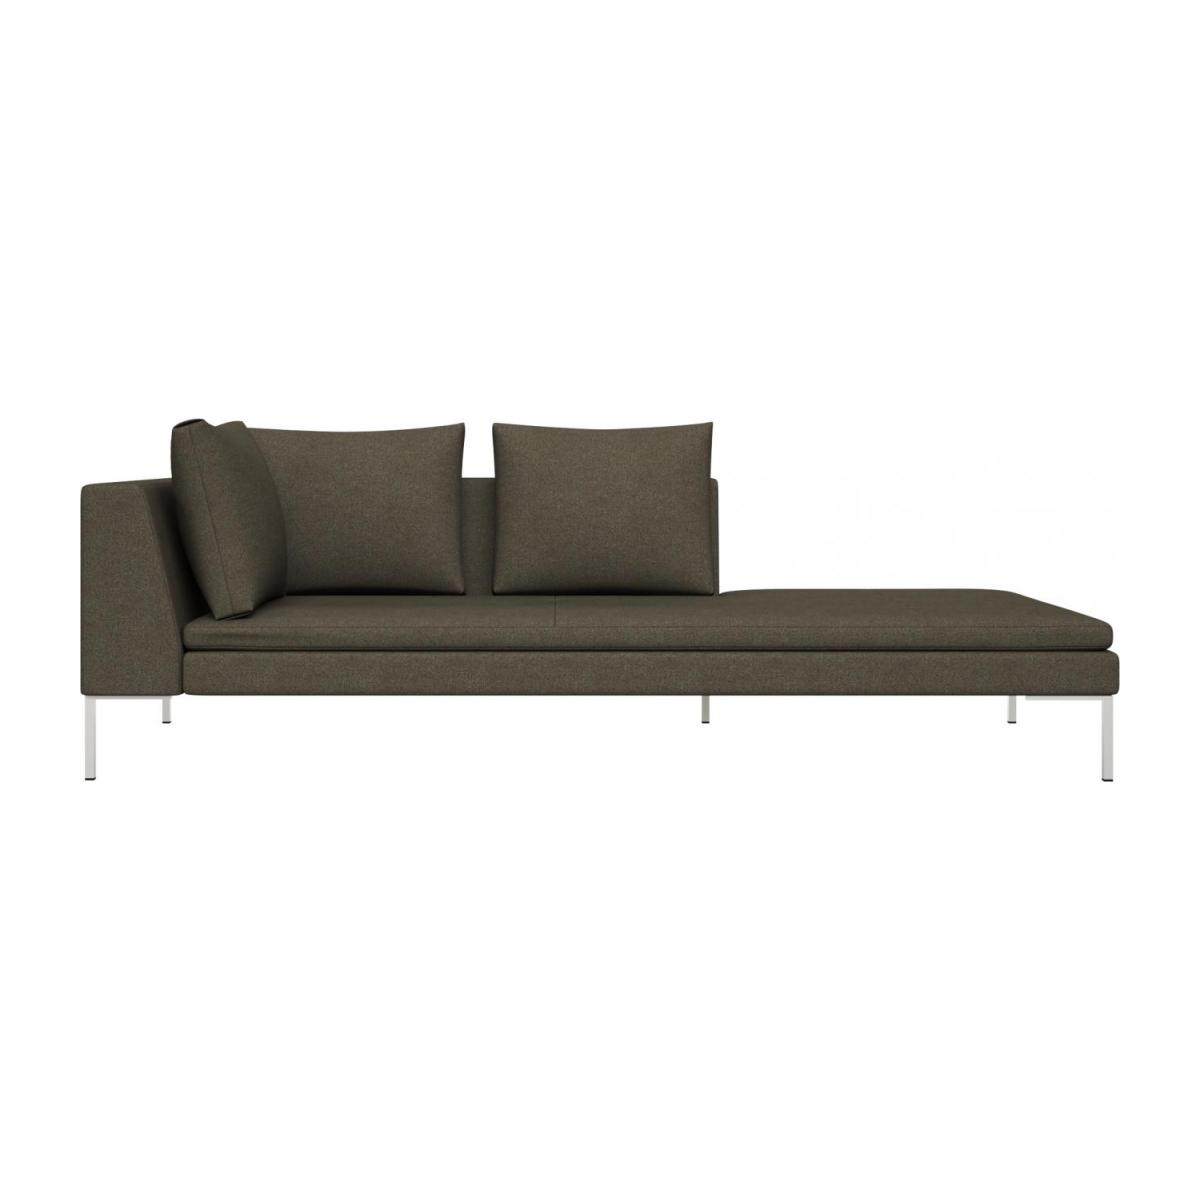 Right chaise longue in Lecce fabric, slade grey n°2